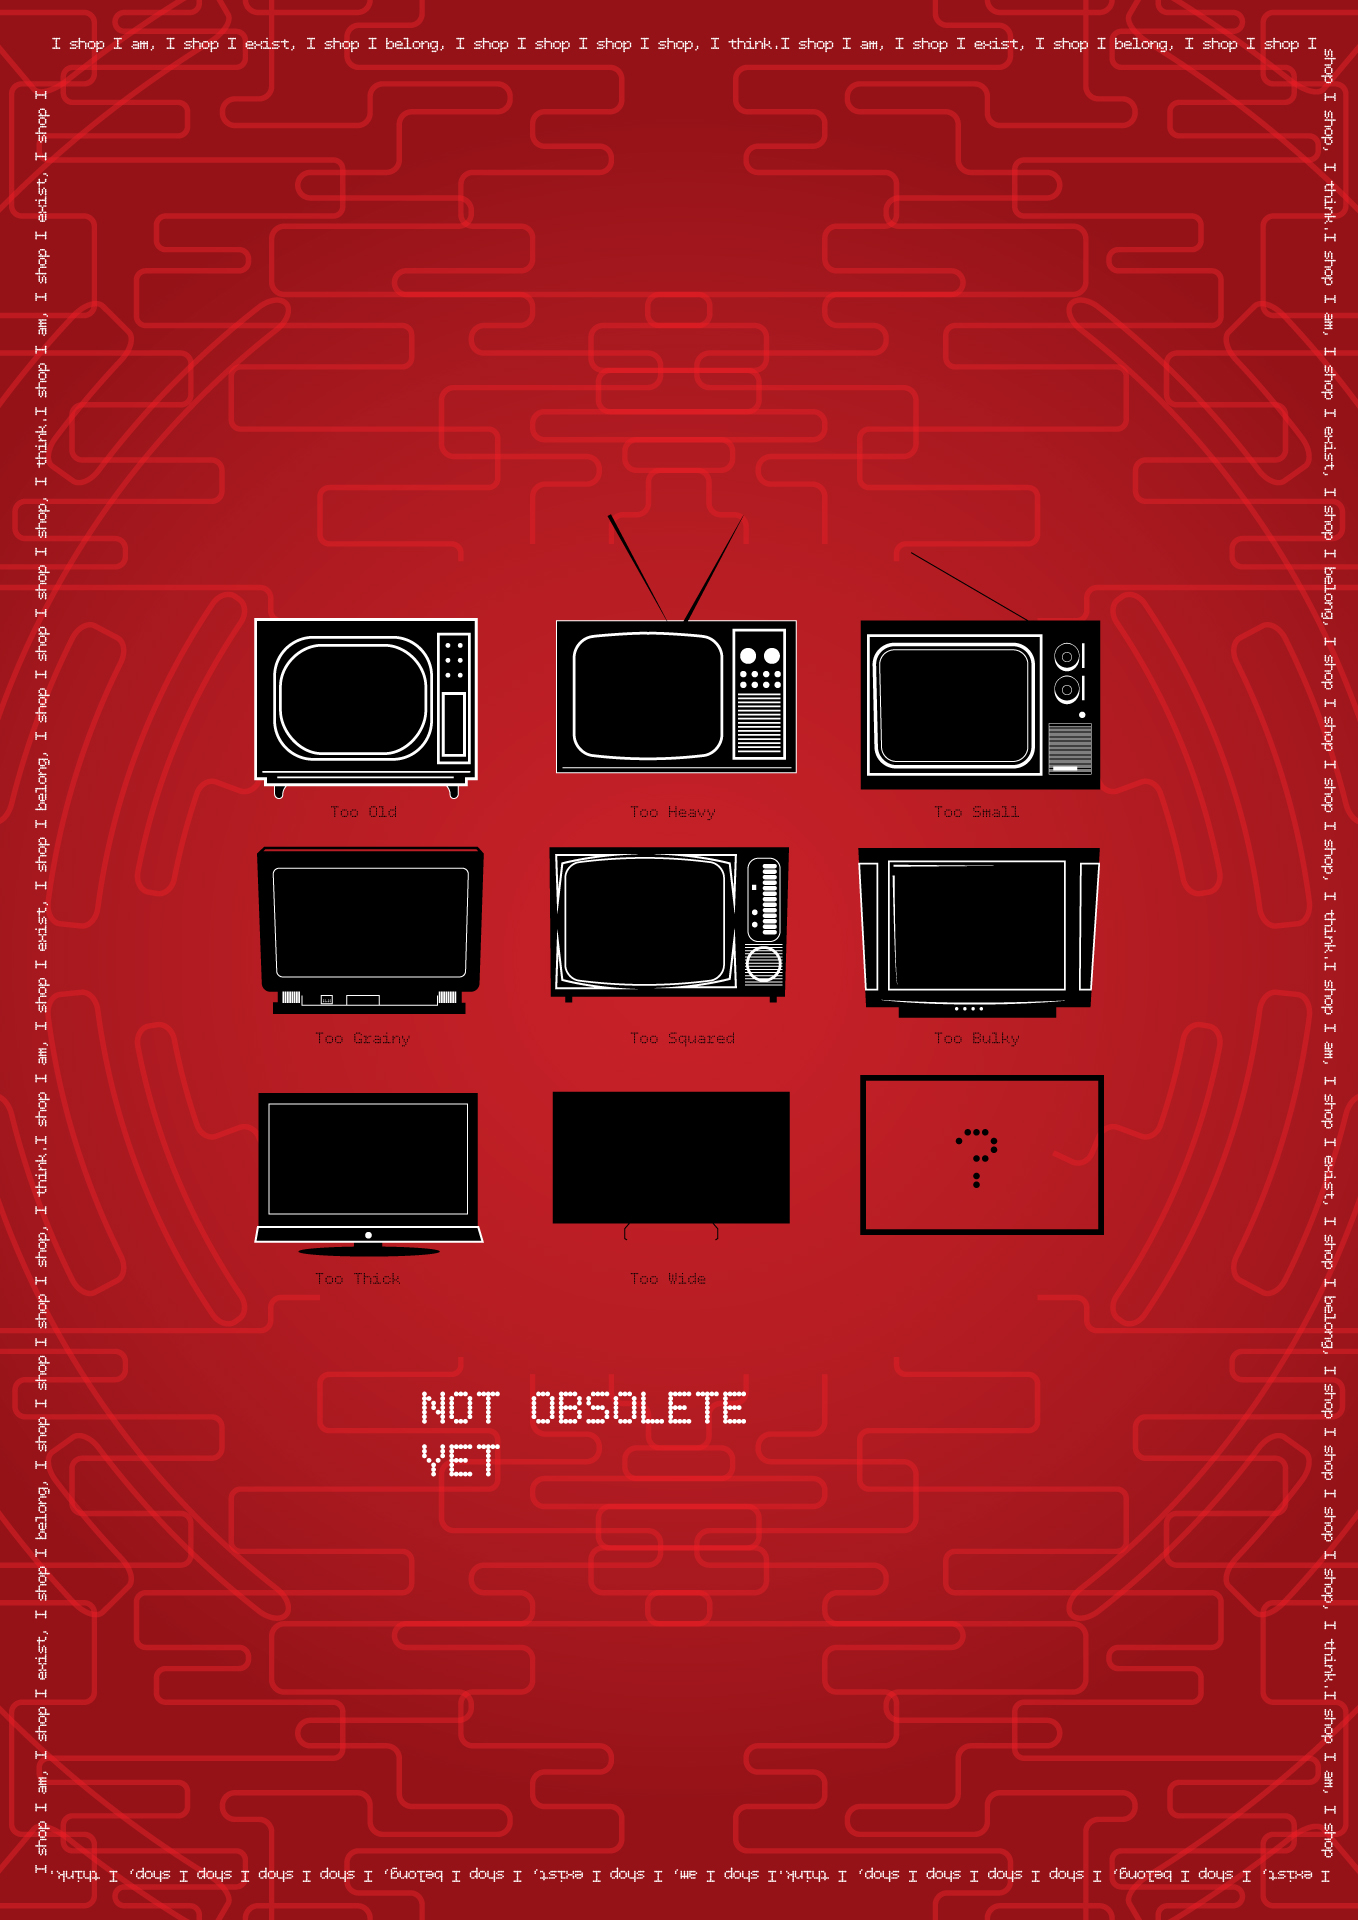 not obsolete yet n.1